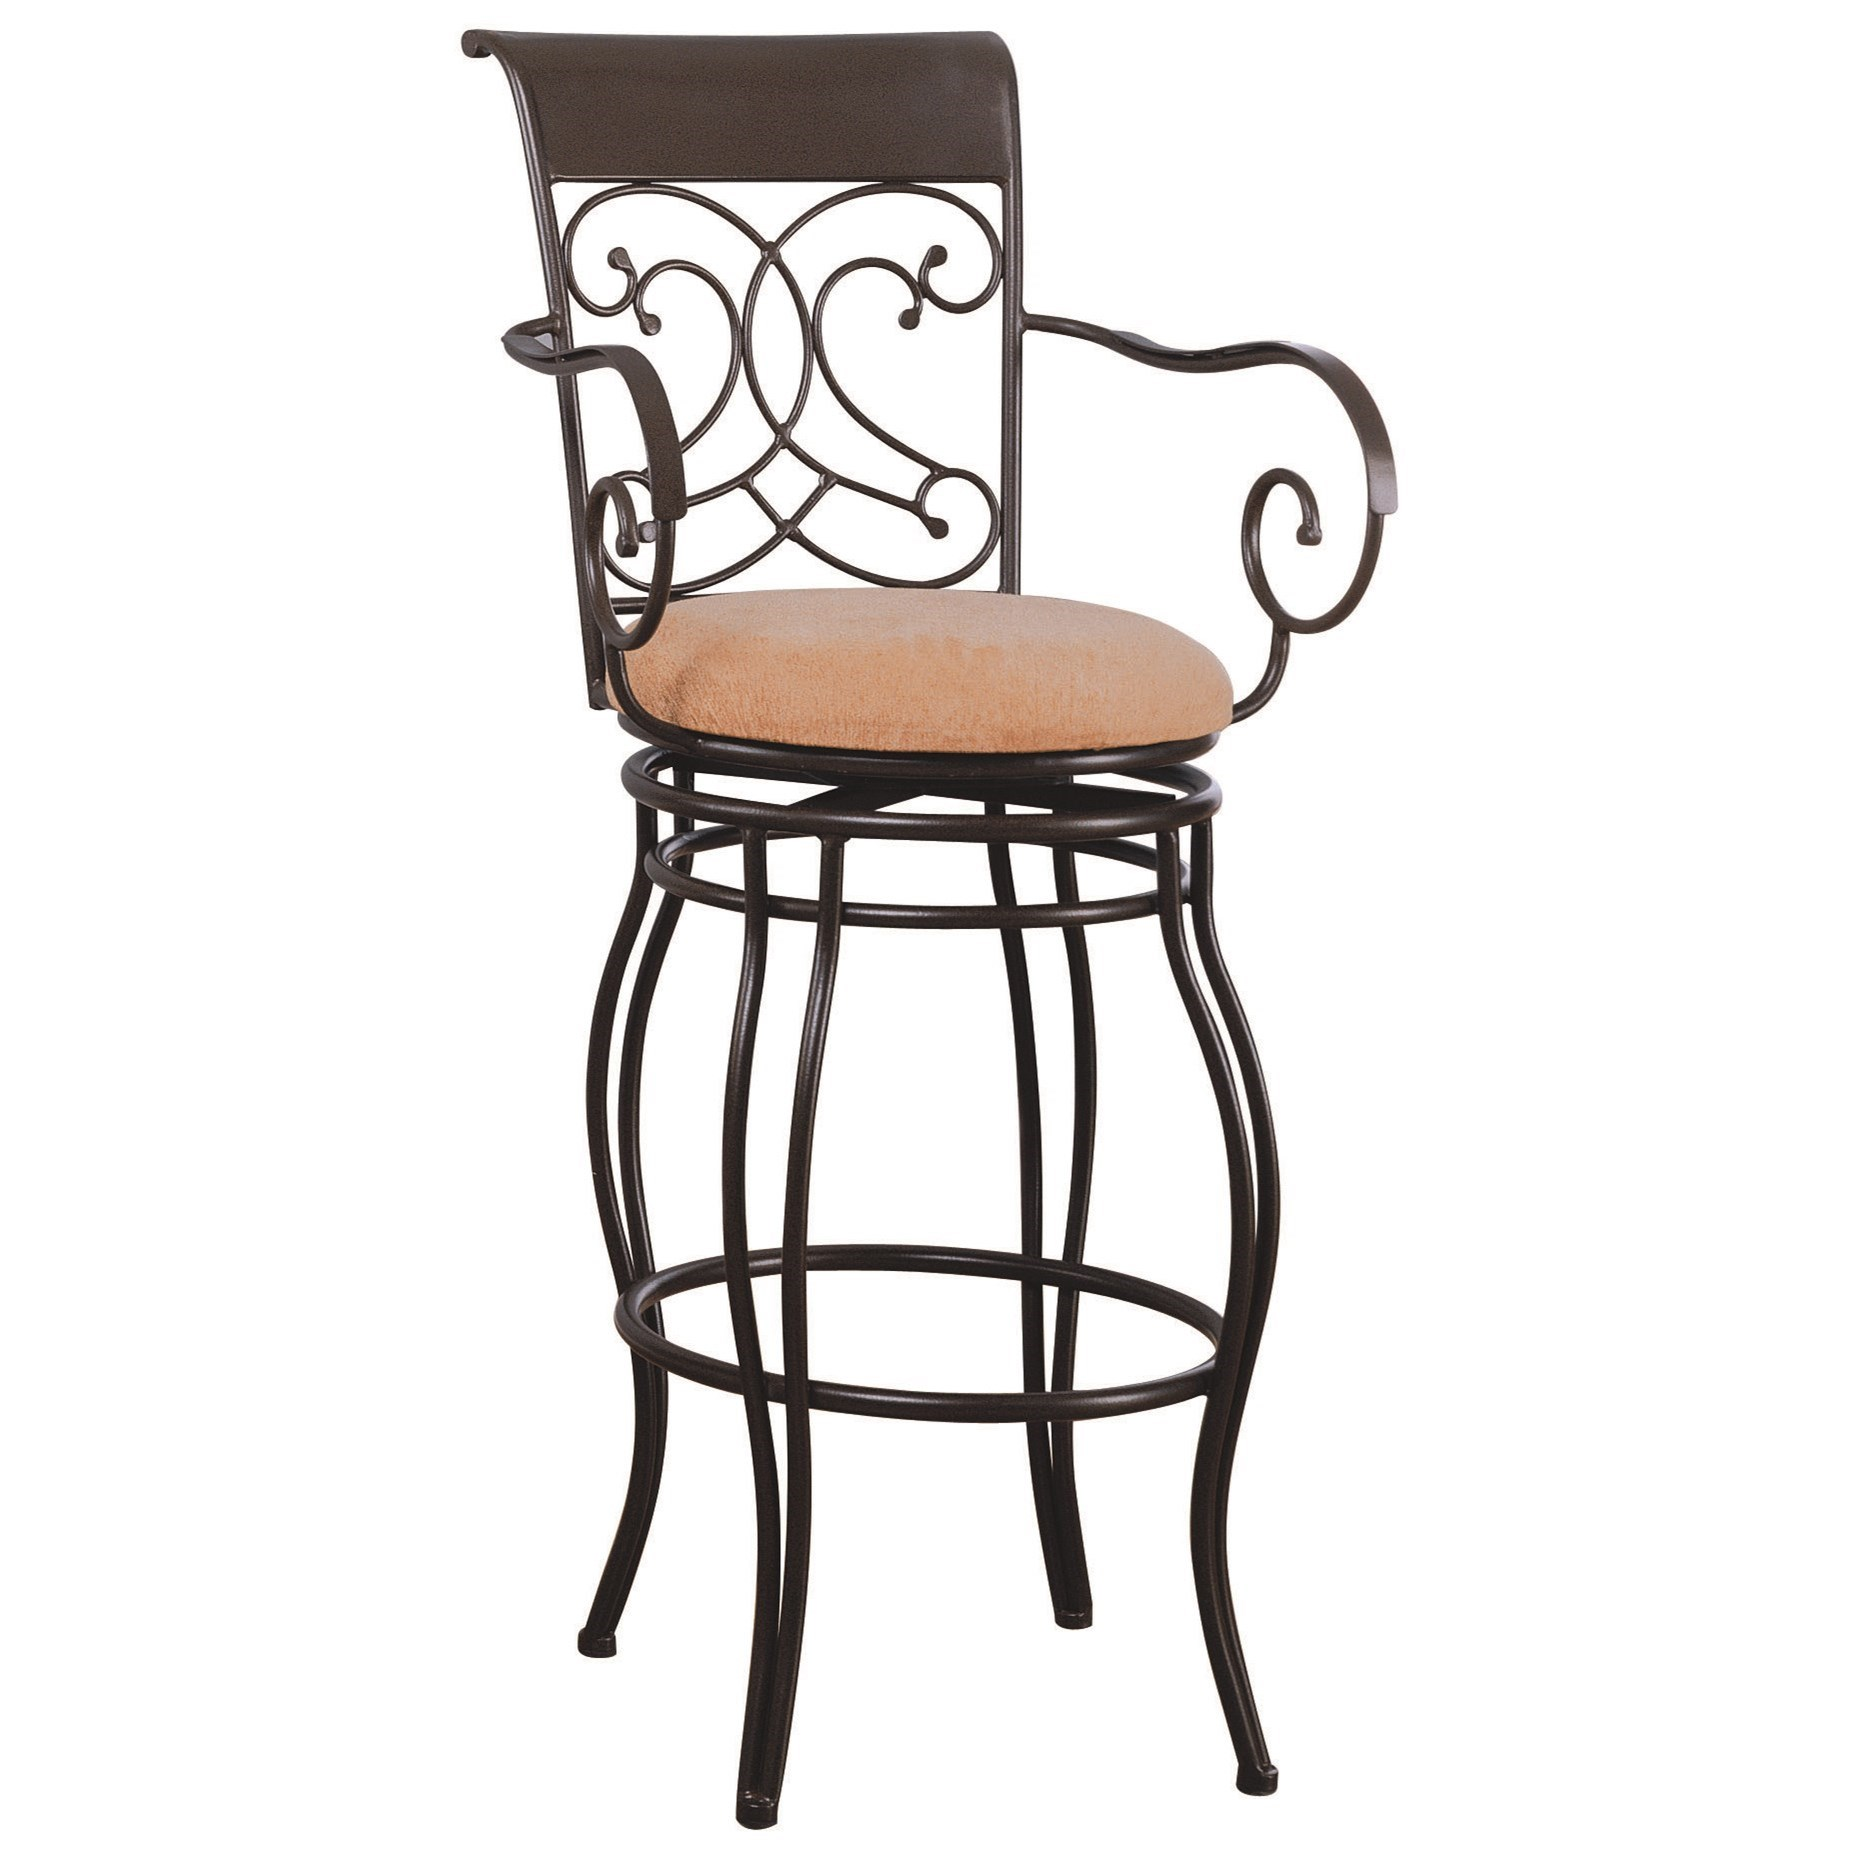 "Coaster Dining Chairs and Bar Stools 29"" Metal Bar Stool with"